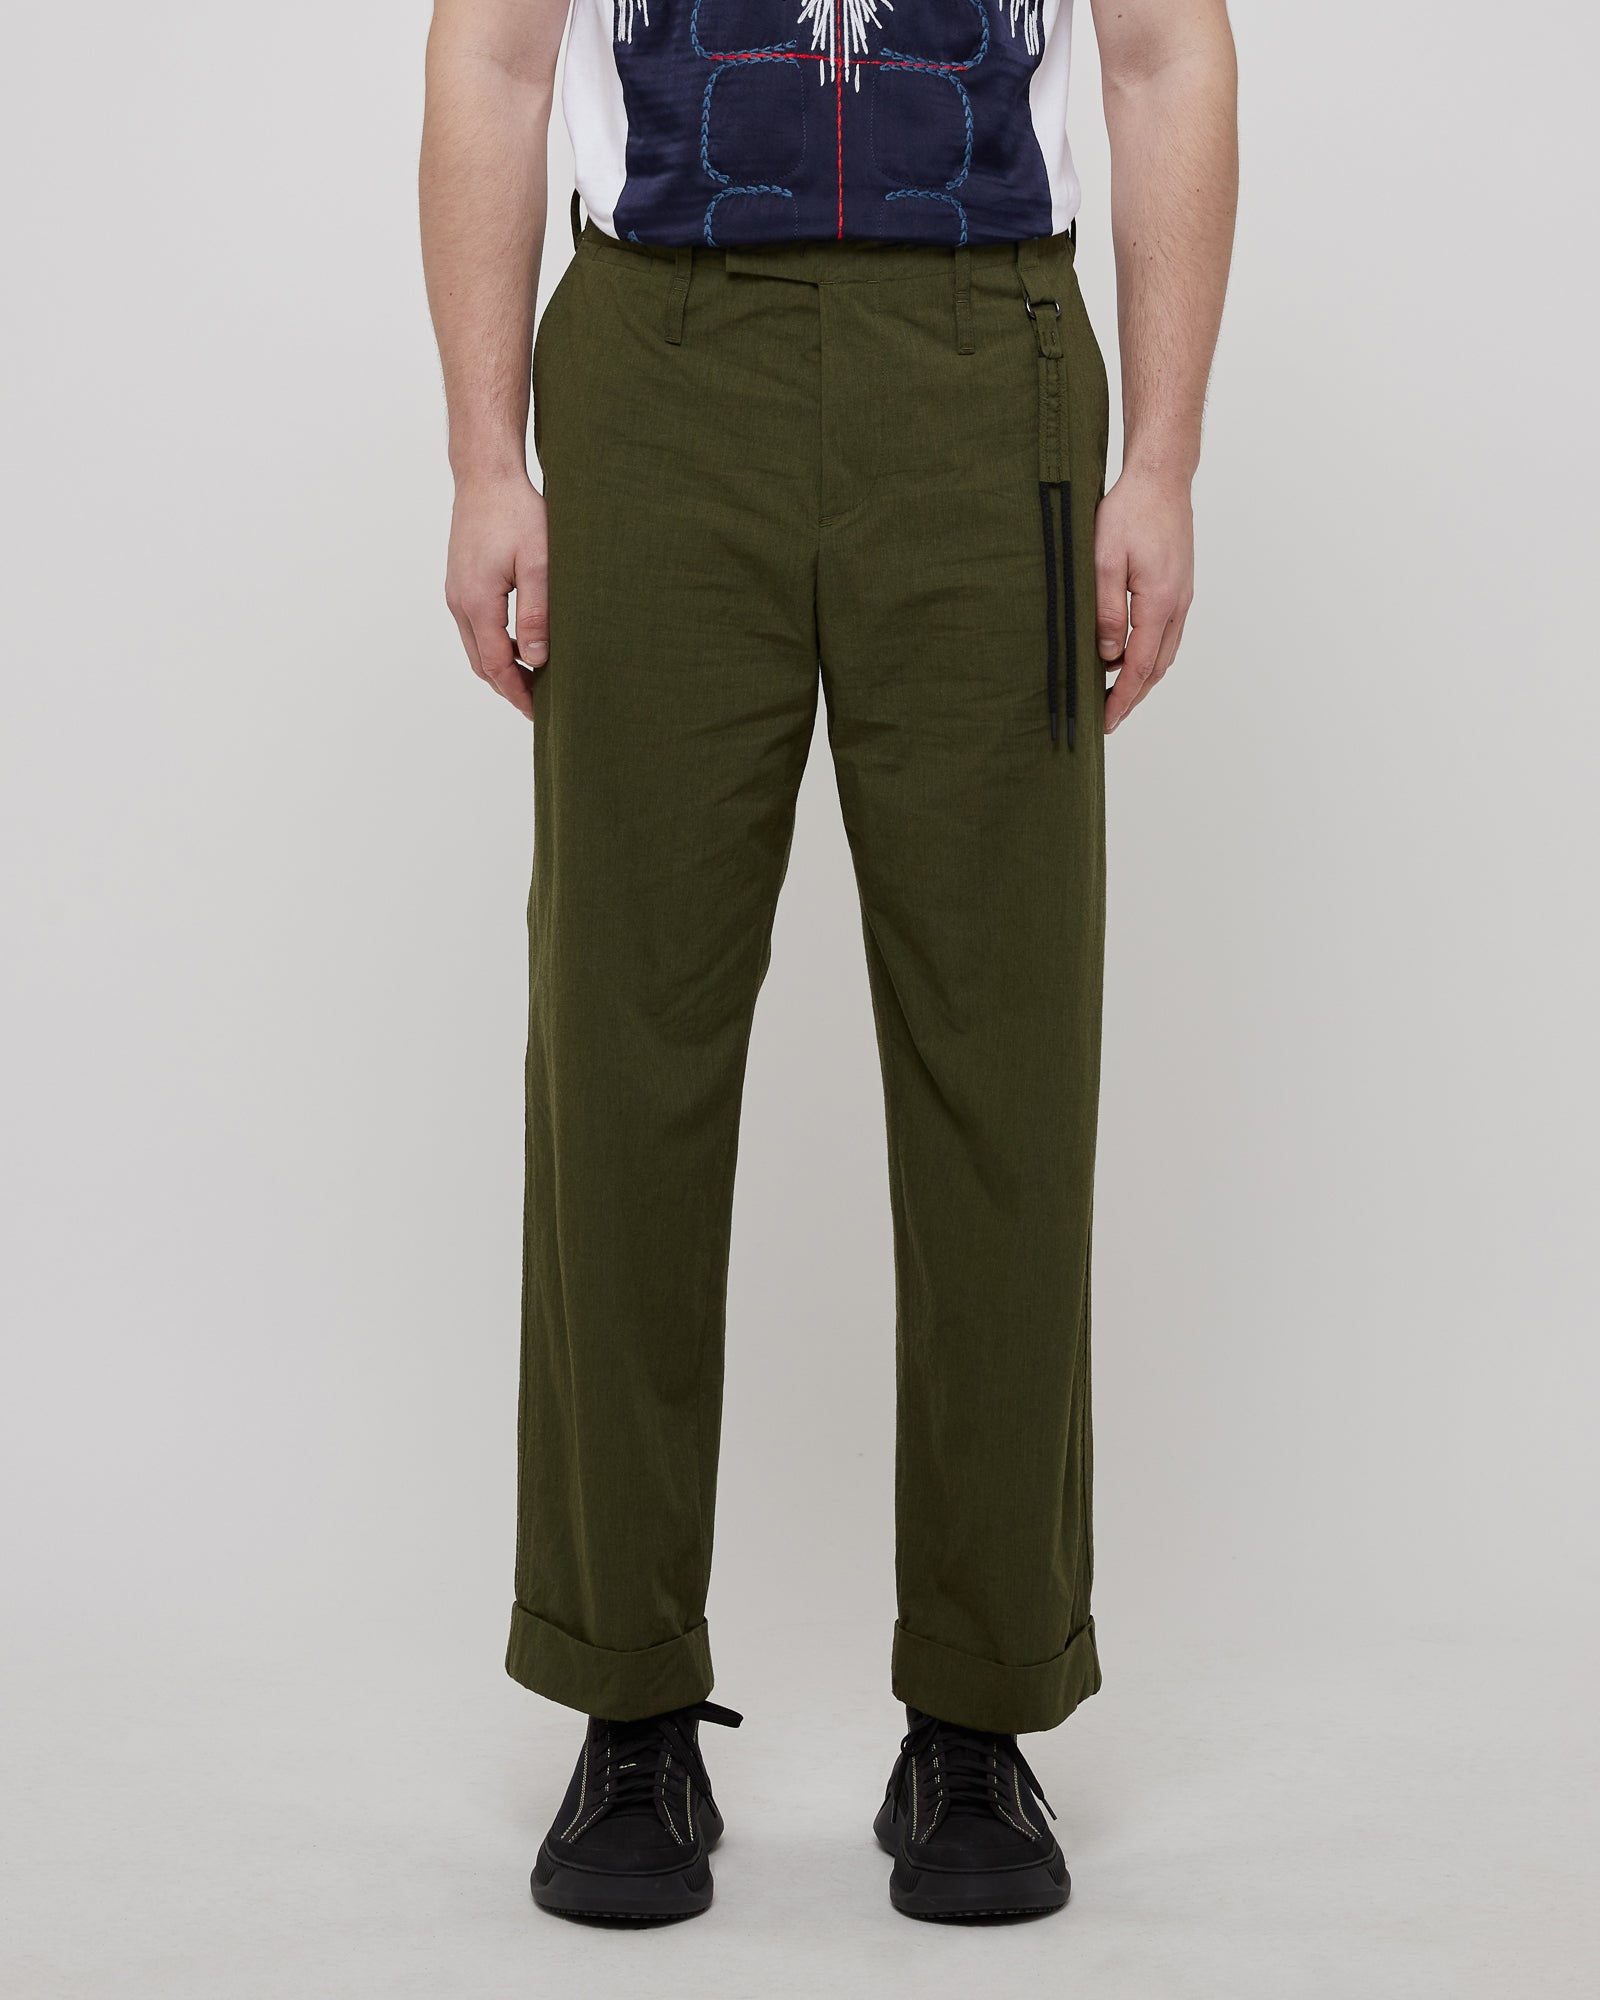 Uniform Trouser in Olive/Black